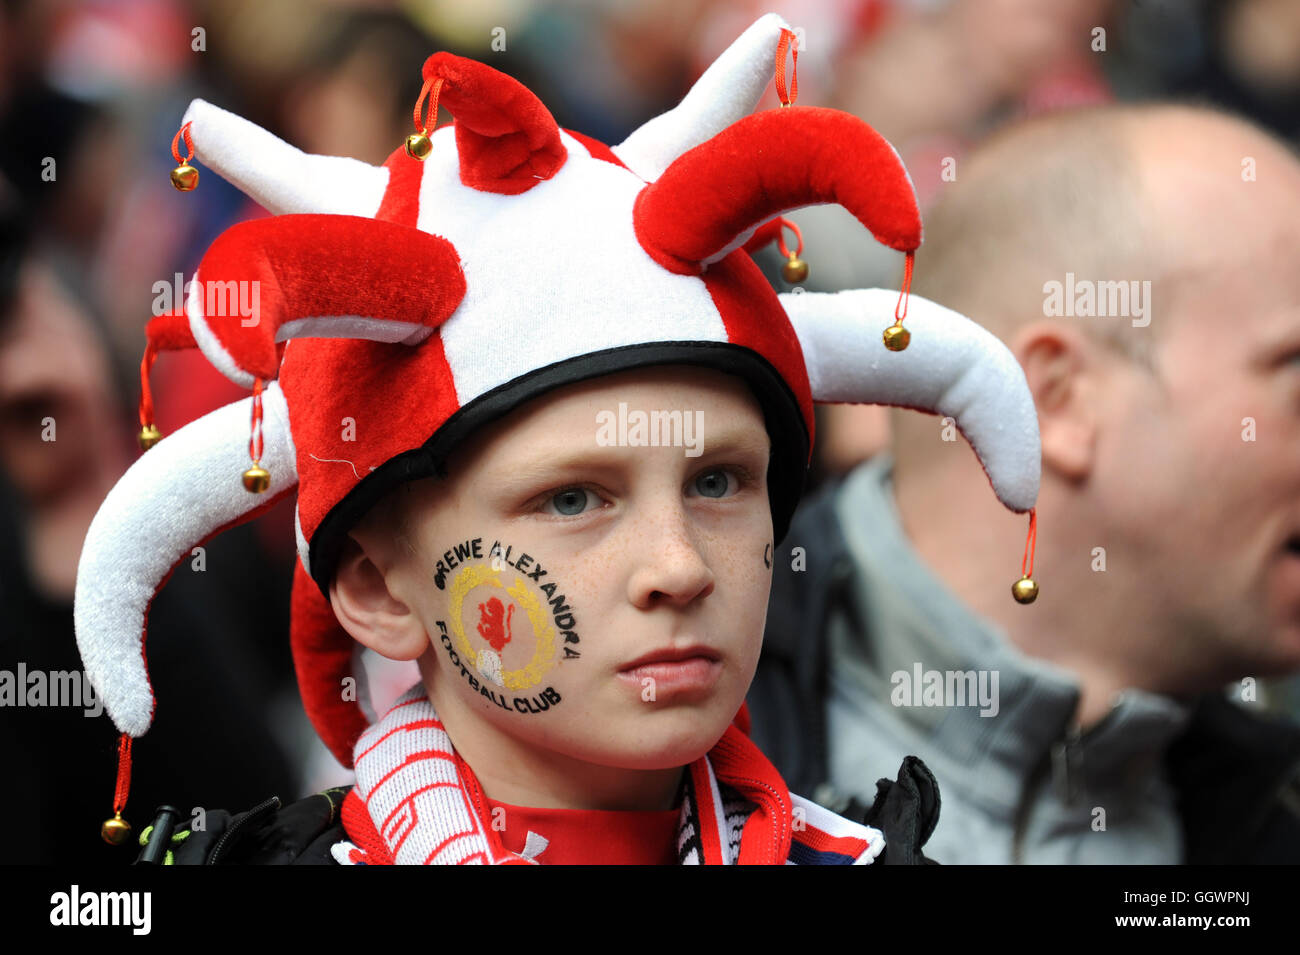 Young Crewe Alexandra football supporter fan - Stock Image